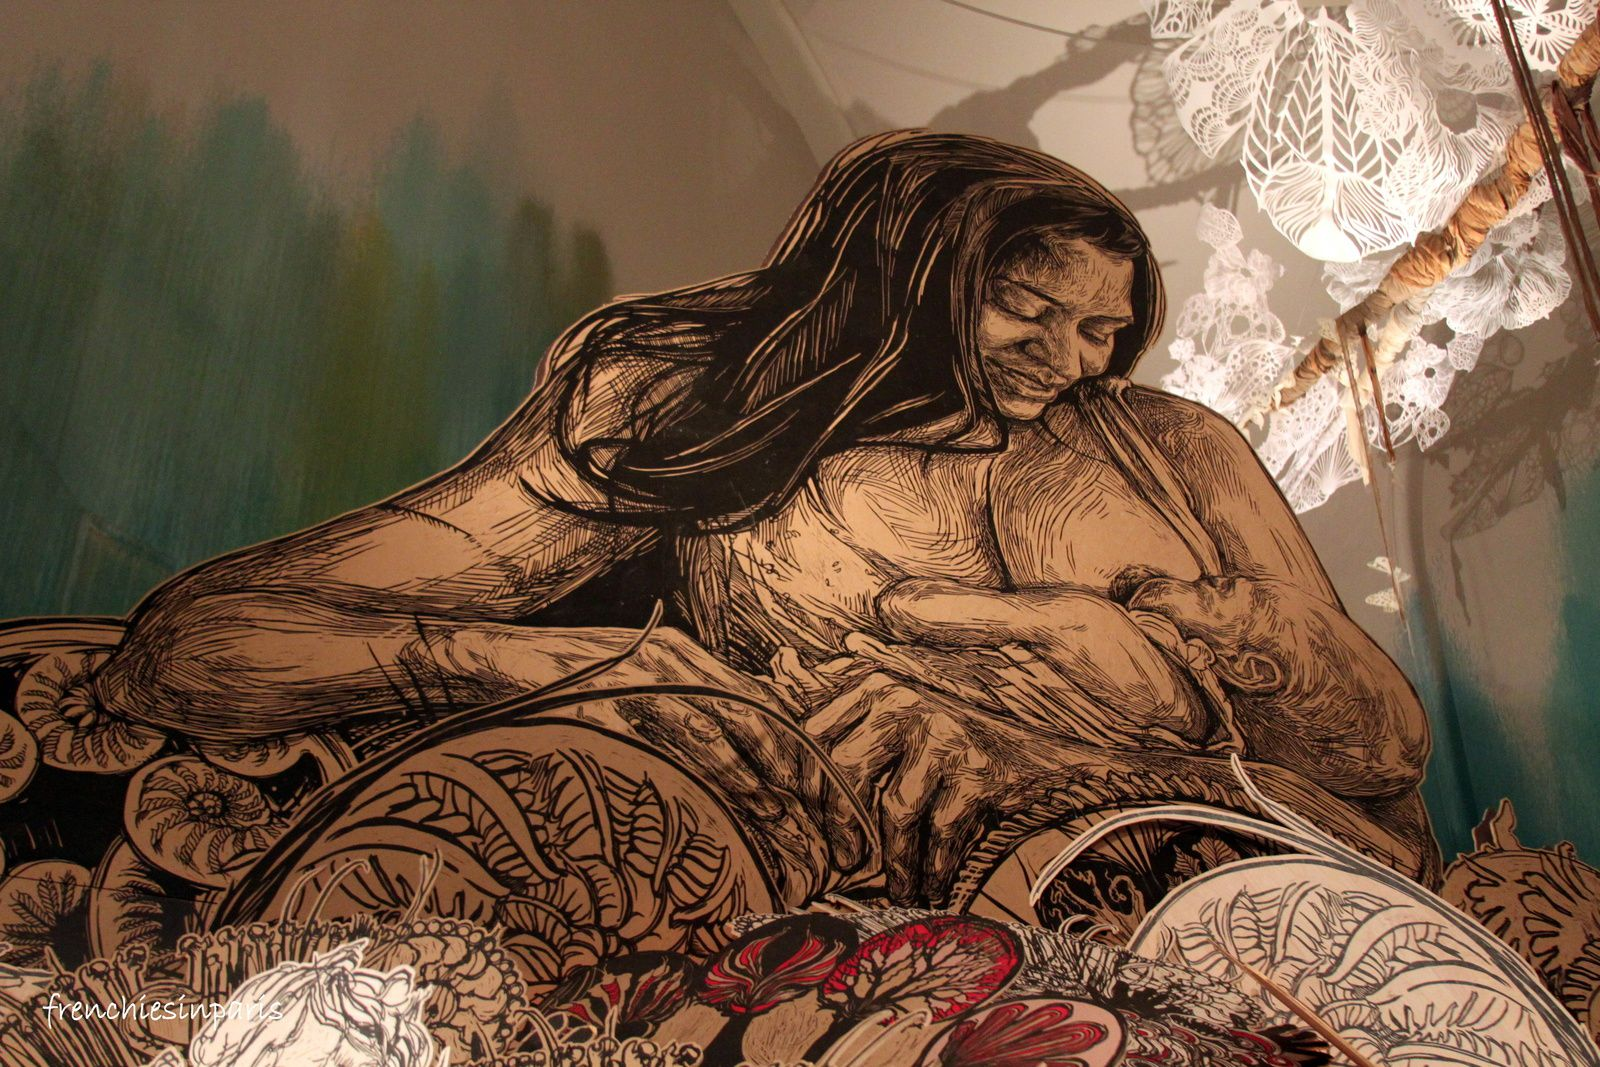 Swoon's Submerged motherlands